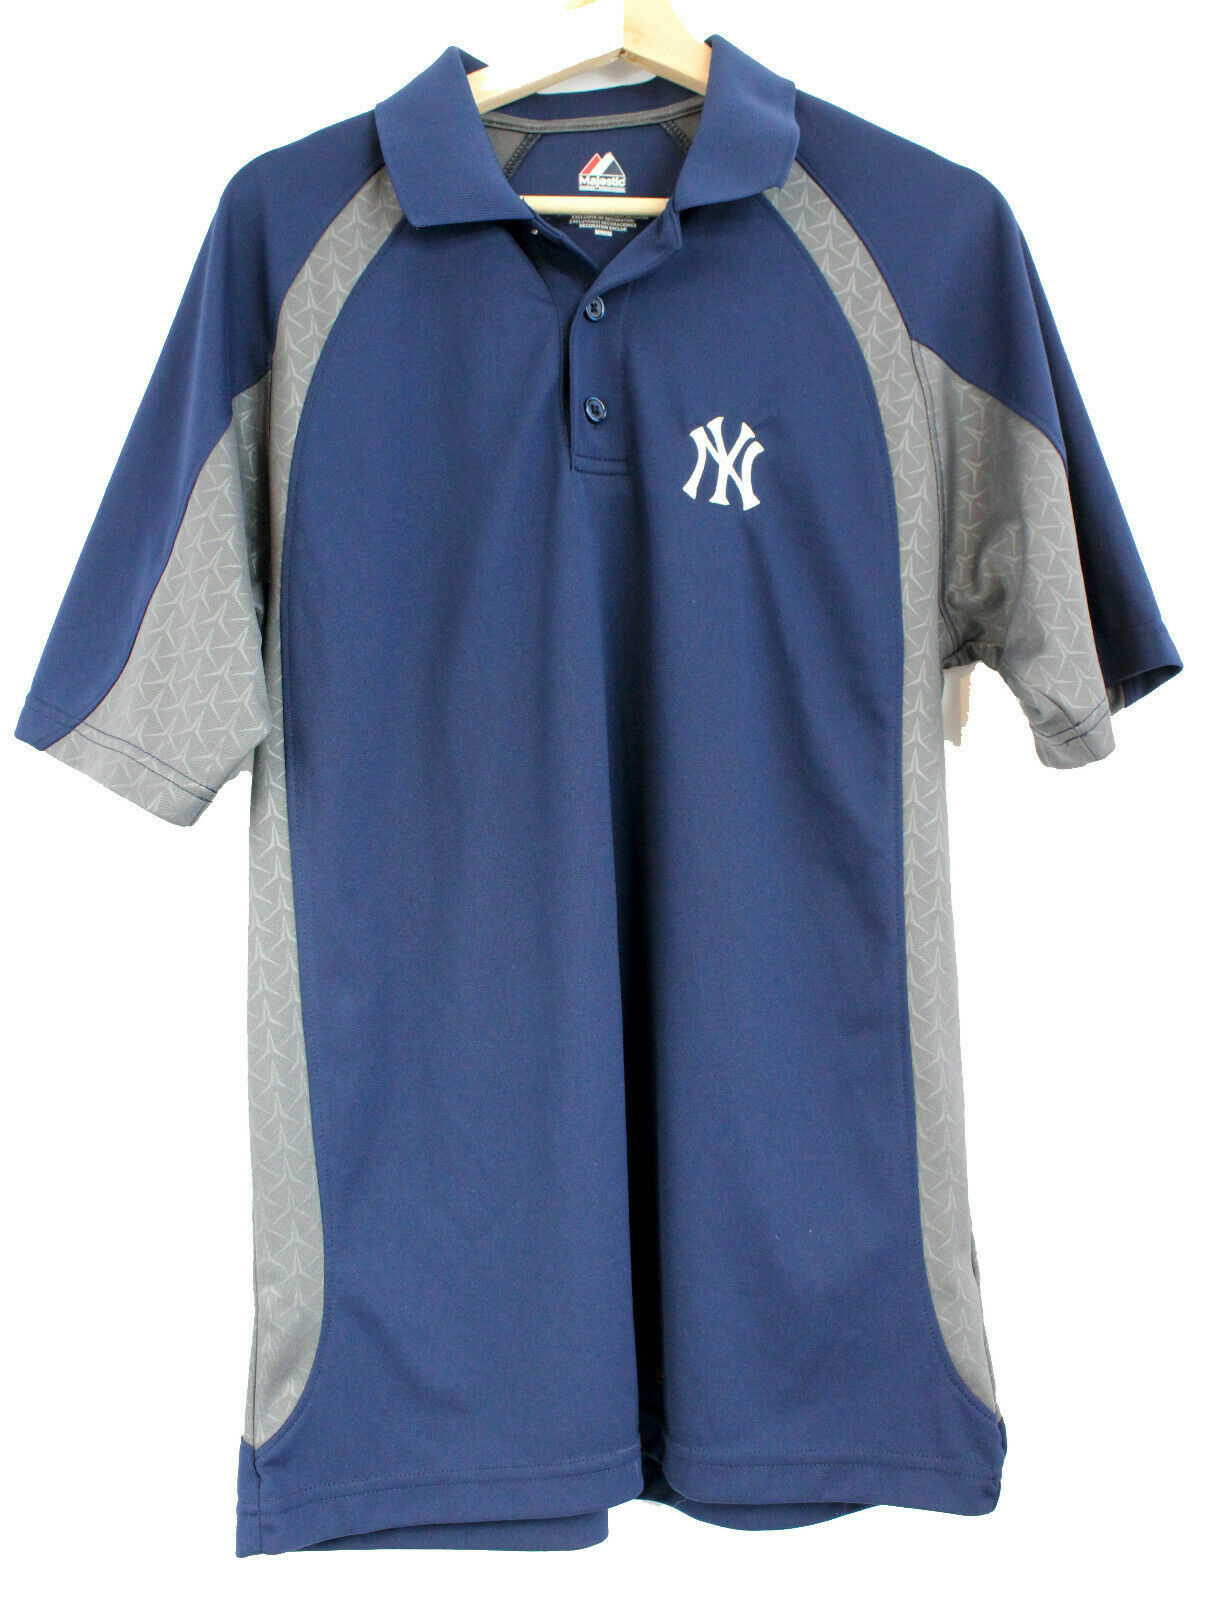 Primary image for Majestic New York Yankees Men's Cool Base Golf Polo Shirt Navy Blue Size Medium